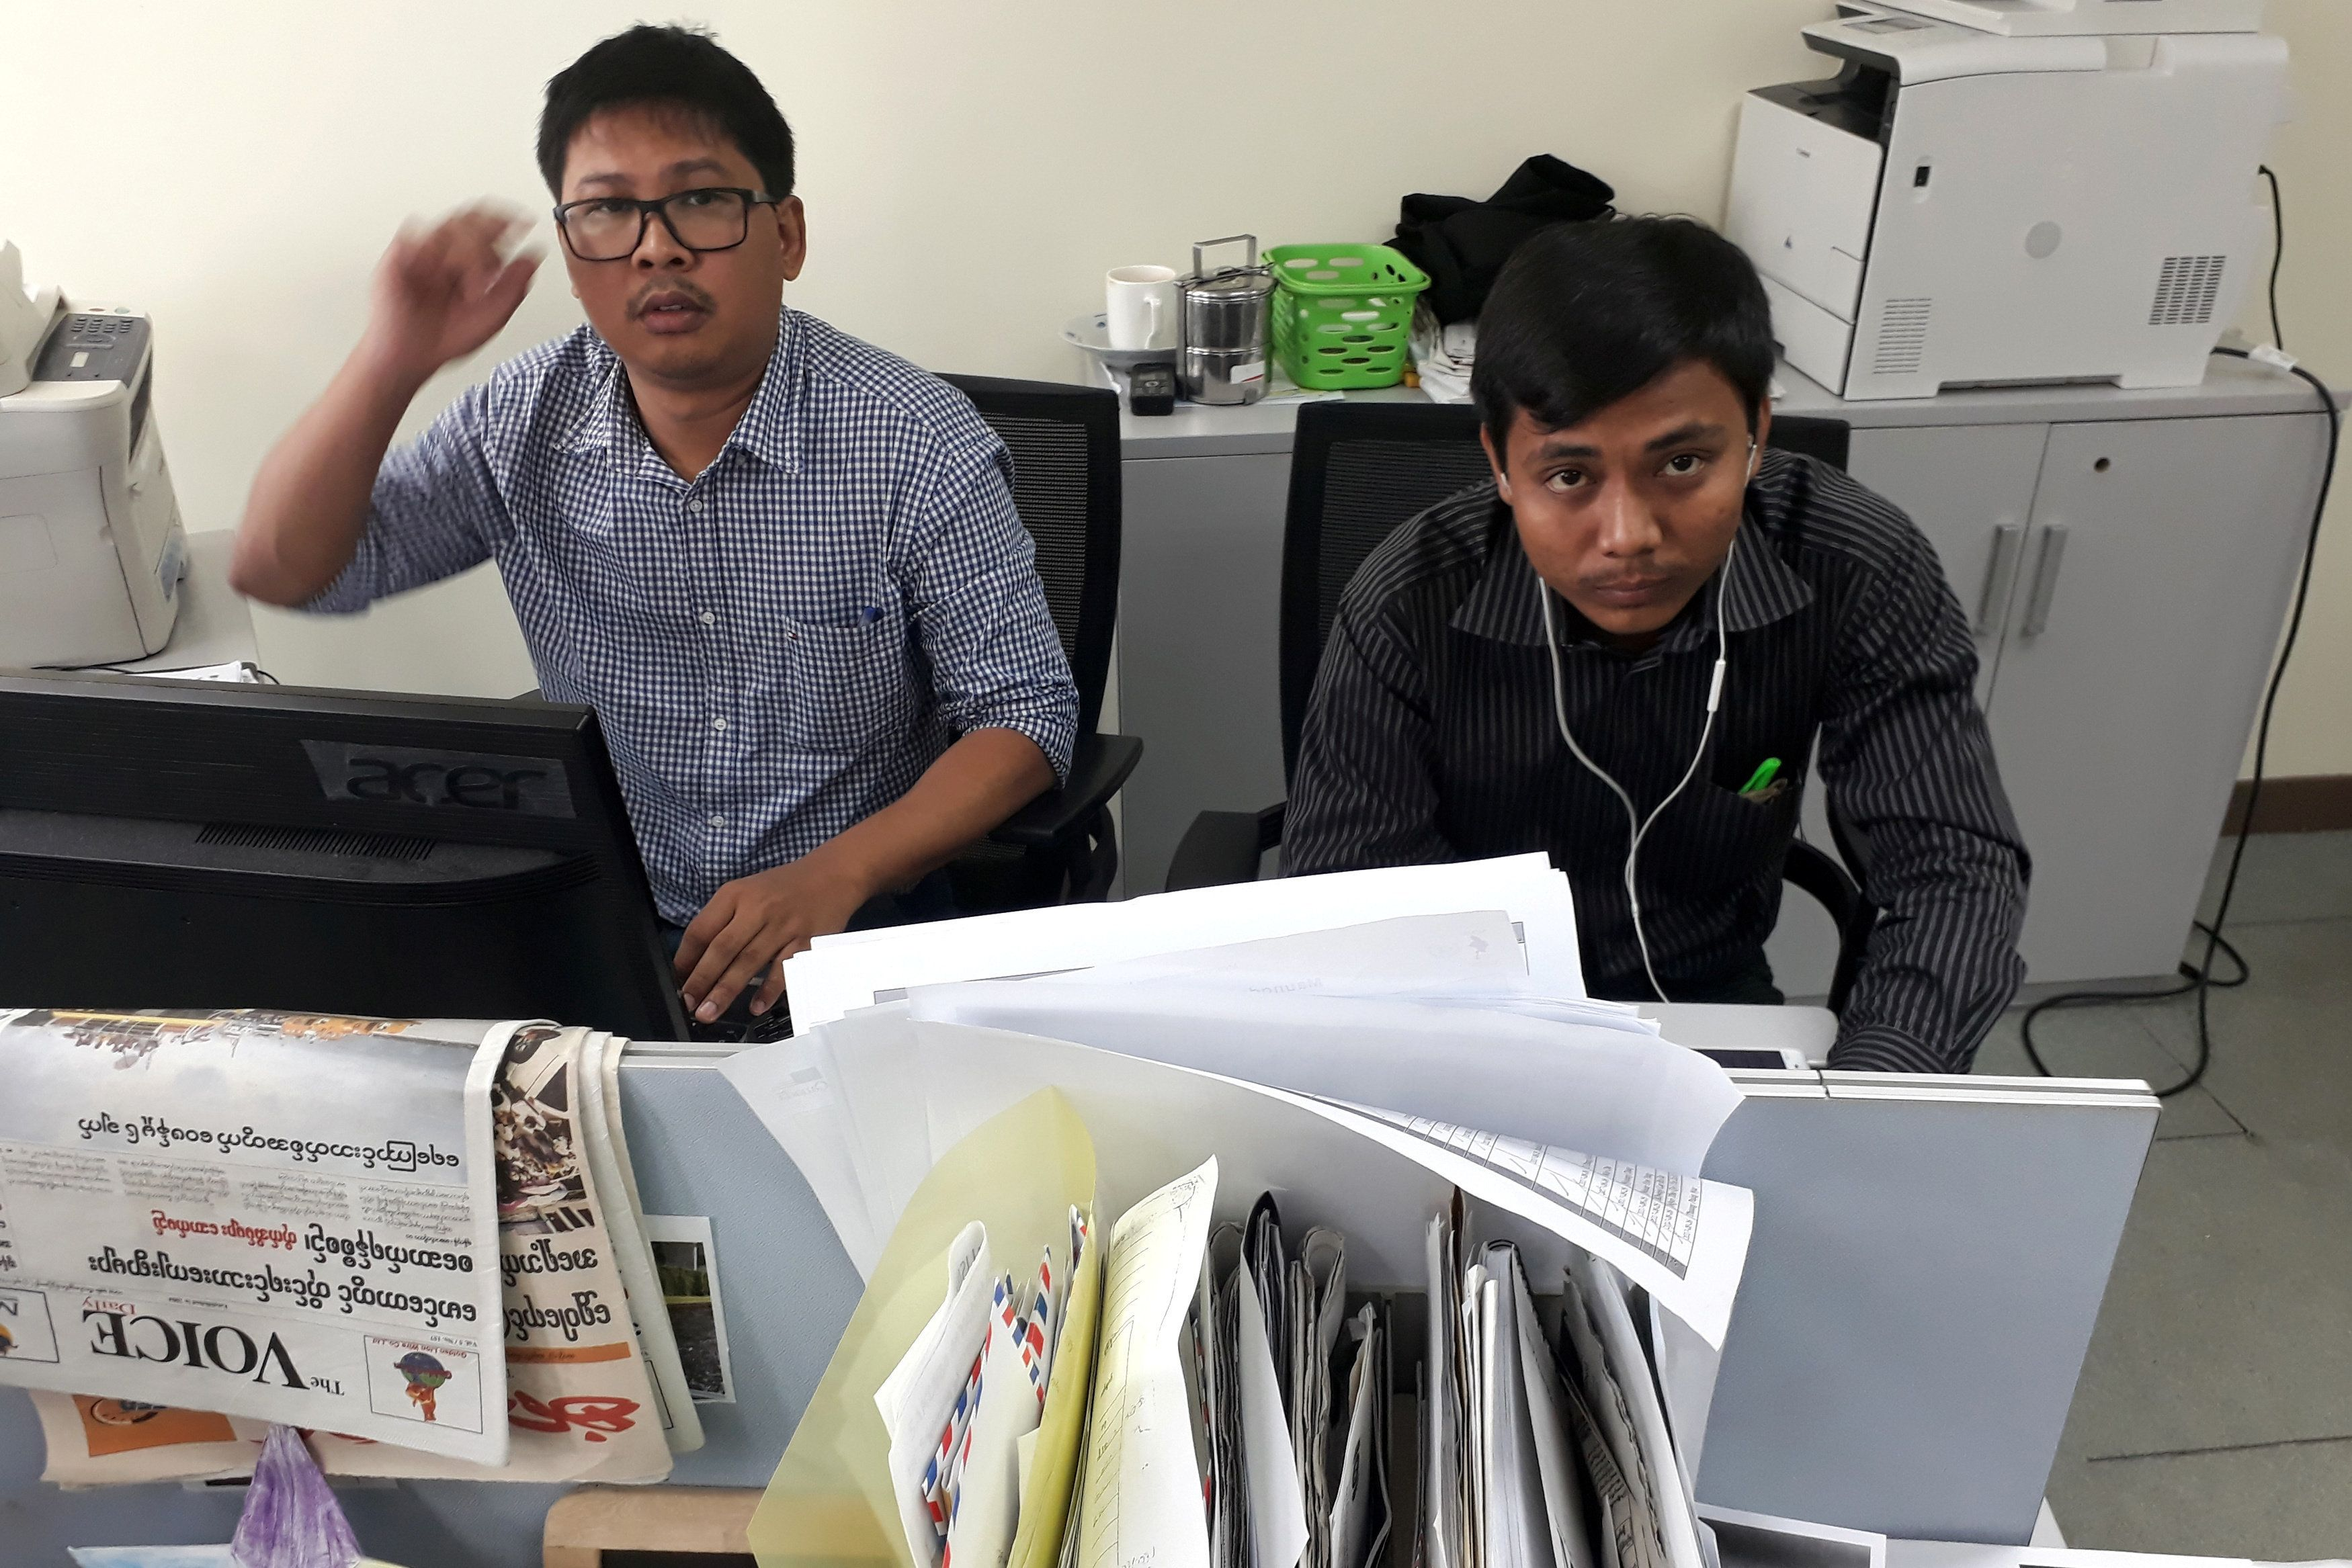 Reuters journalists Wa Lone (L) and Kyaw Soe Oo, who are based in Myanmar, pose for a picture at the Reuters office in Yangon